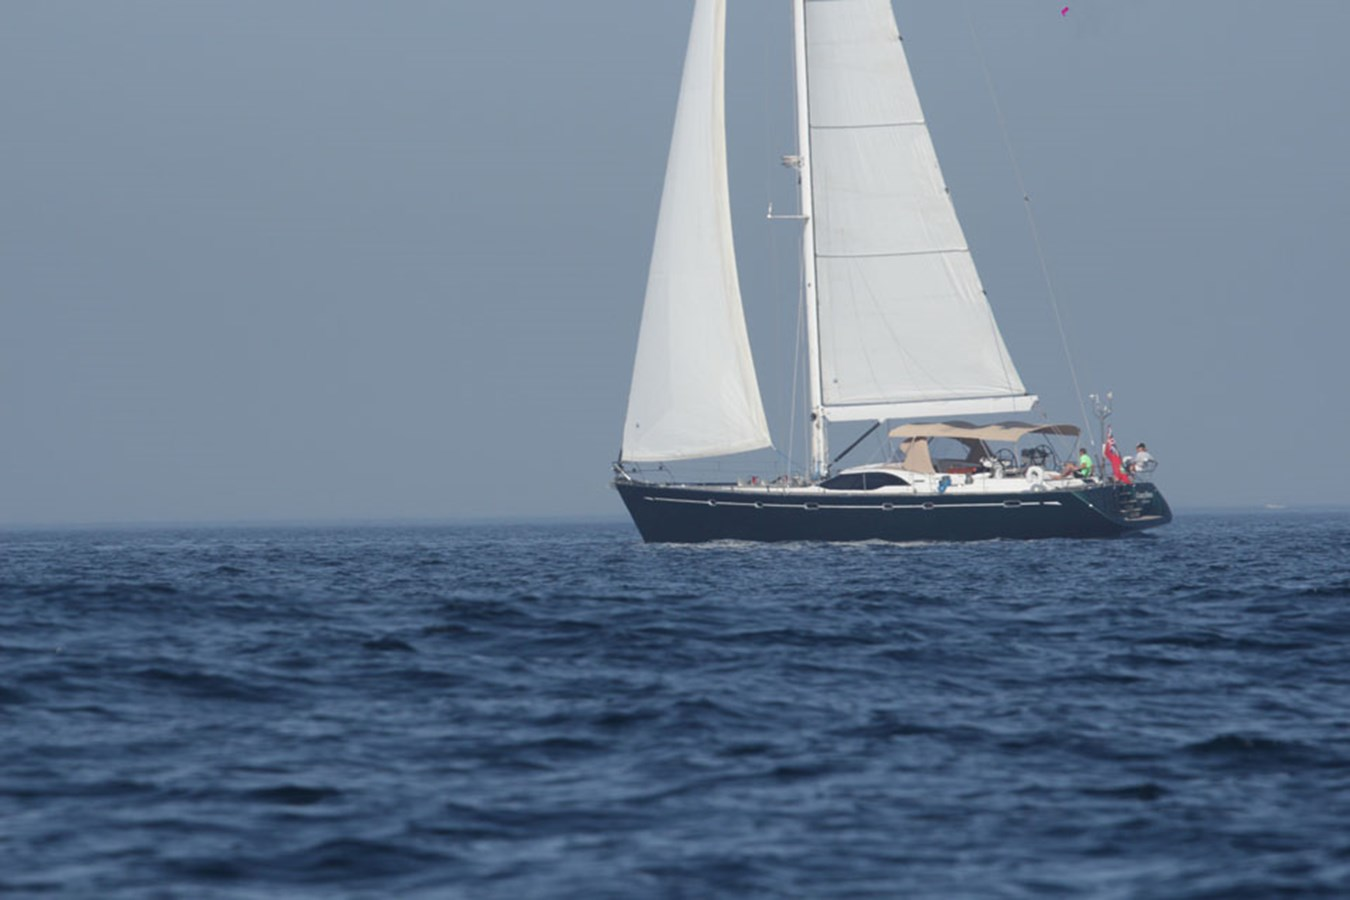 oyster-72-30 2005 OYSTER MARINE LTD Oyster 72 Cruising Sailboat 2707573